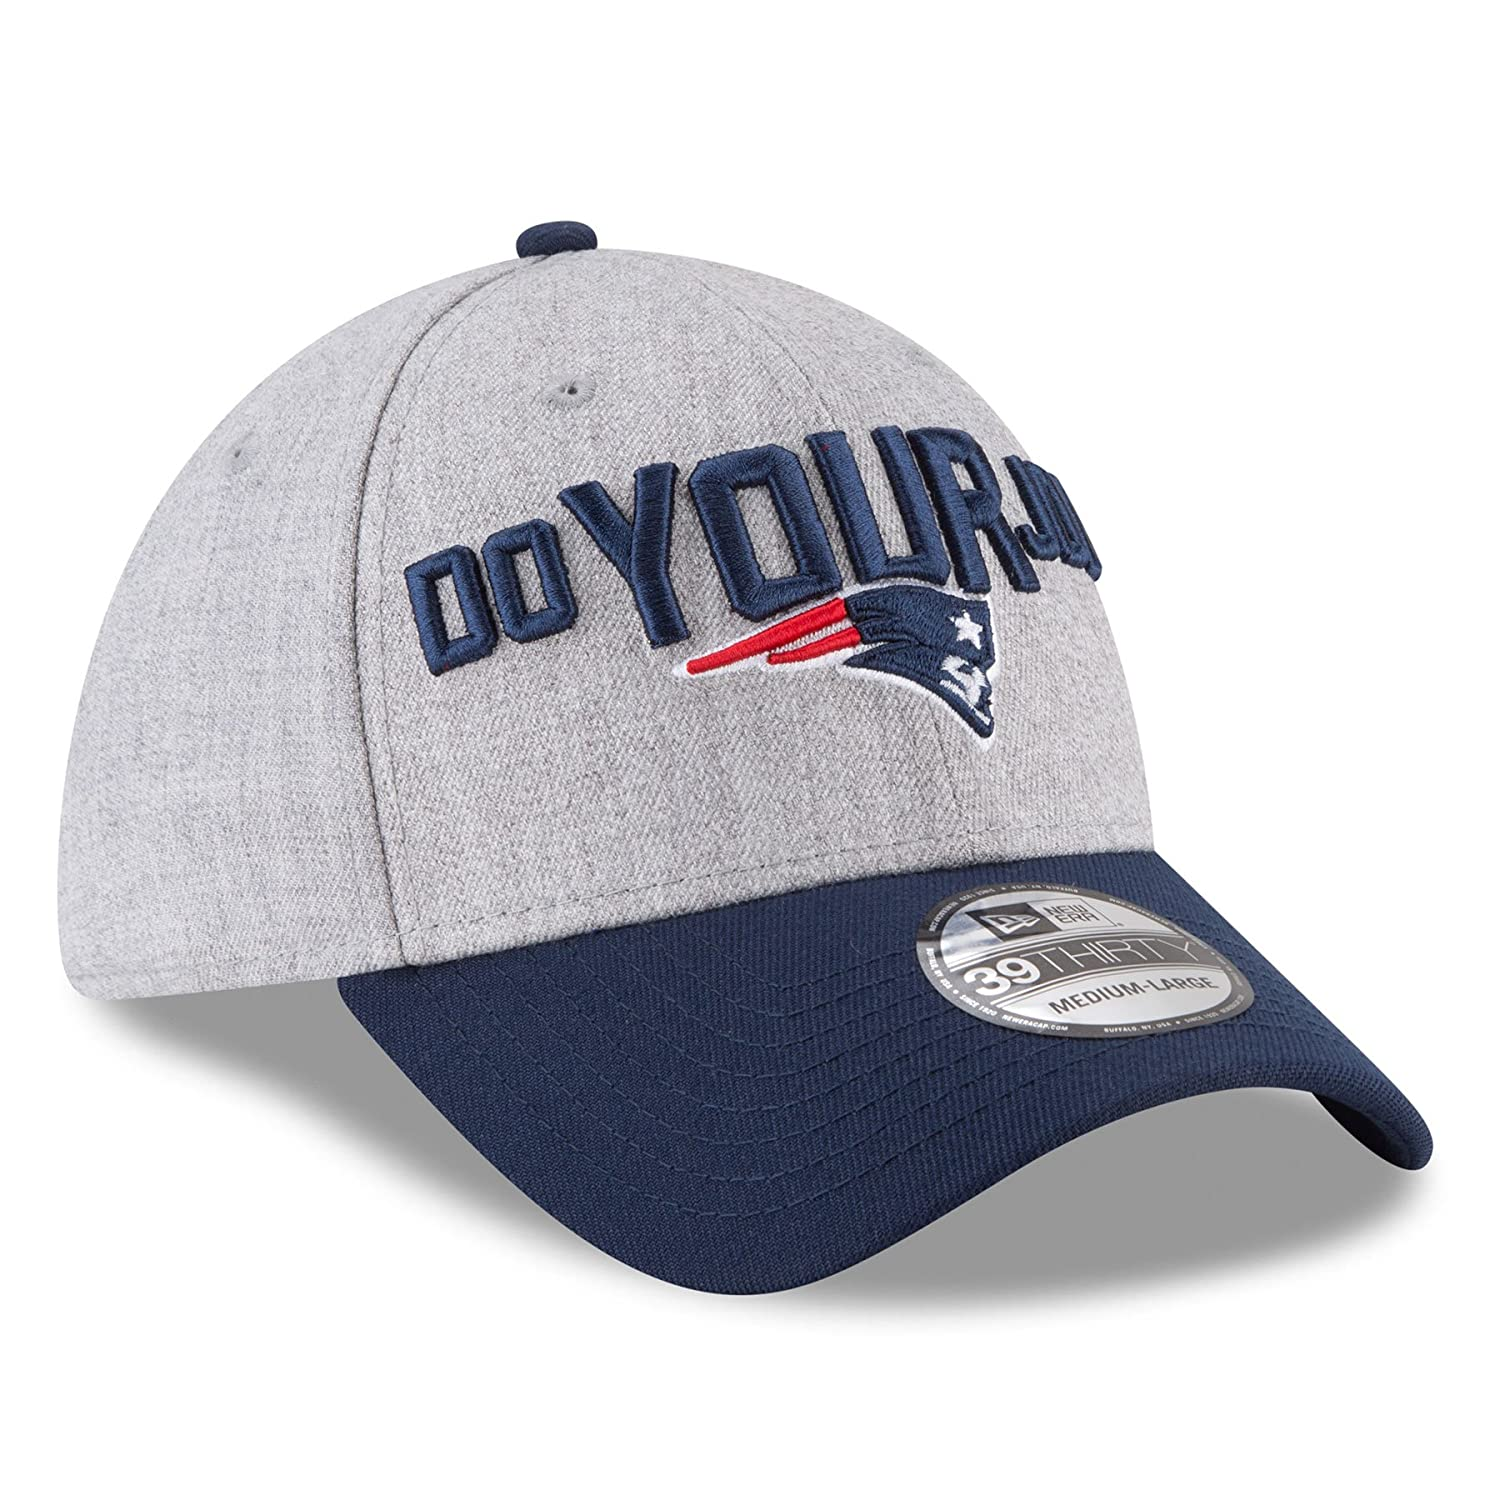 ee8dc37a0 Men s New England Patriots New Era Heather Gray Navy 2018 NFL Draft Official  On-Stage 39THIRTY Flex Hat (Medium Large)